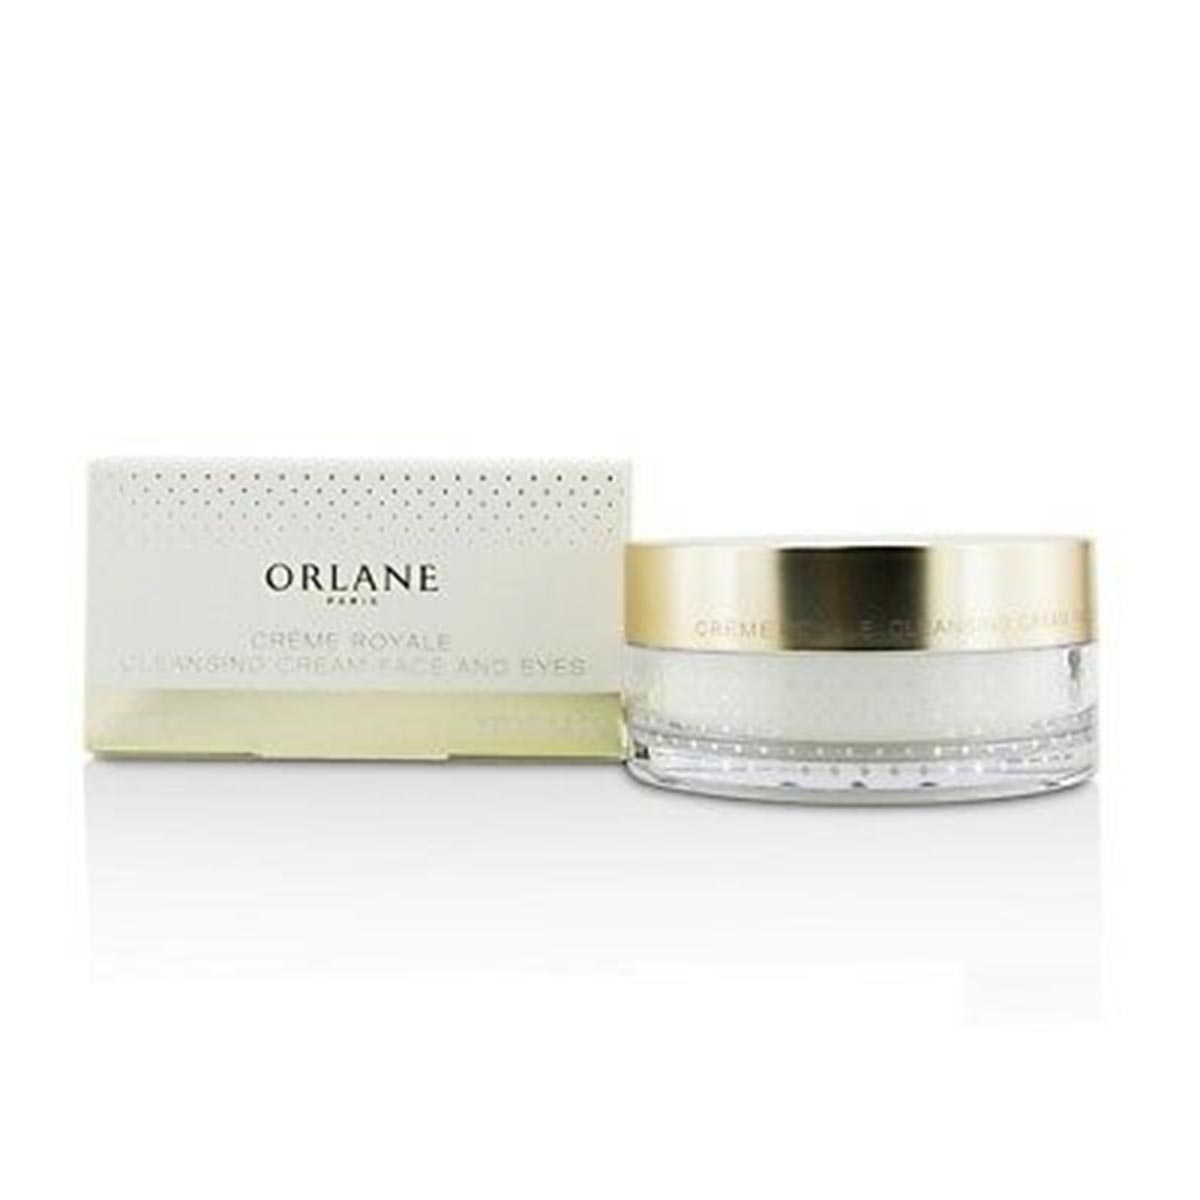 Orlane creme royale cleansing cream face and eyes 130ml